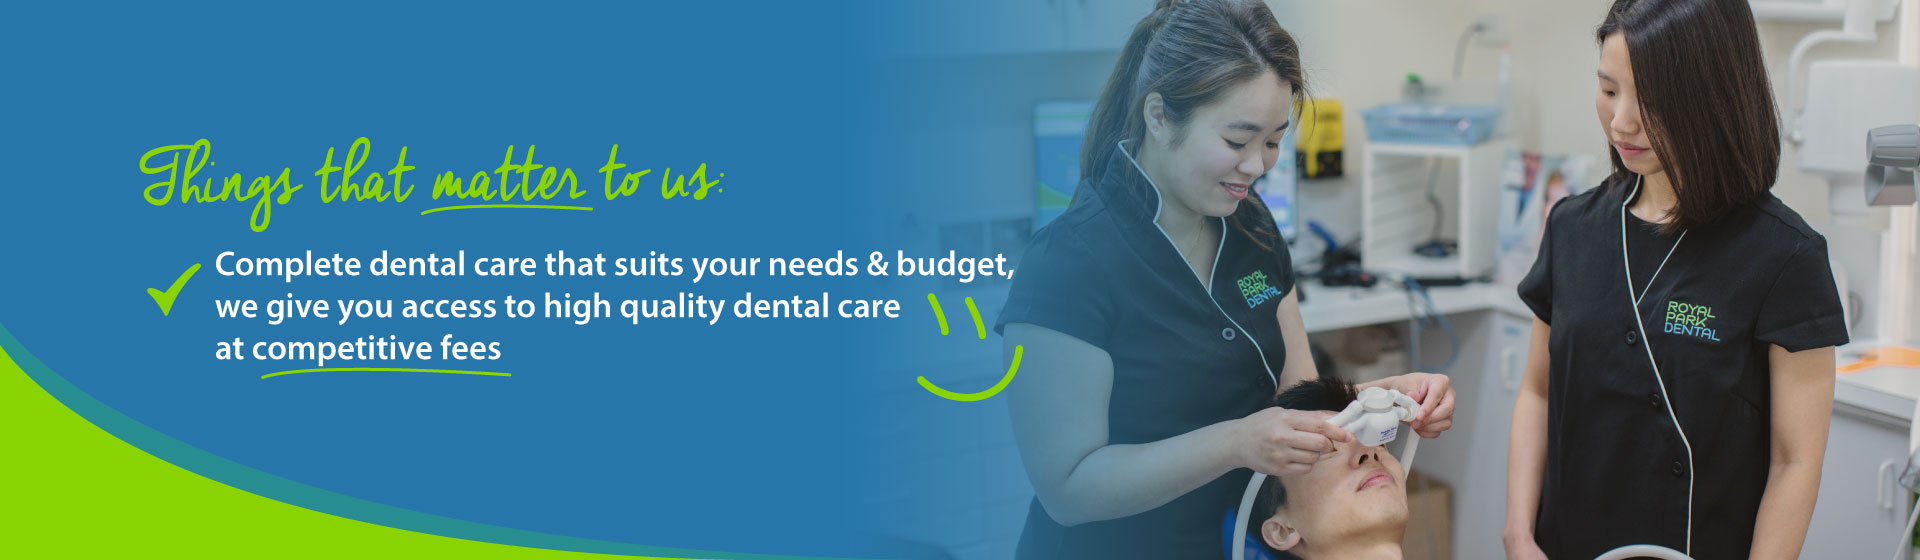 Royal Park Dental Dentist Complete Dental Care That Suits Your Needs  Budget